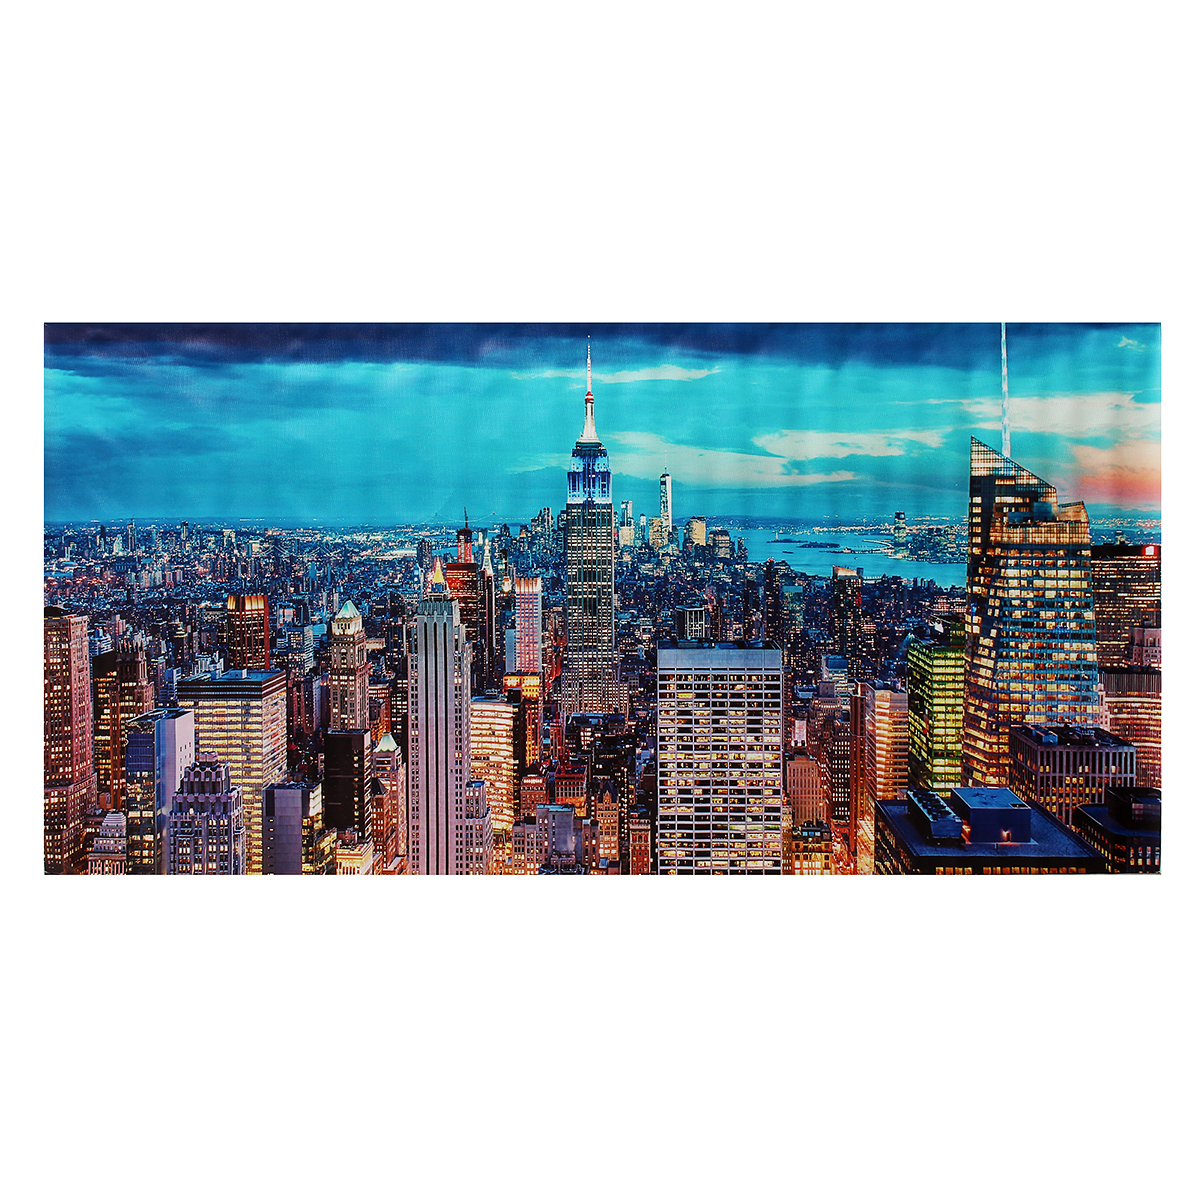 tableau peinture l 39 huile toile abstraite paysage moderne art d cor mural salon ebay. Black Bedroom Furniture Sets. Home Design Ideas